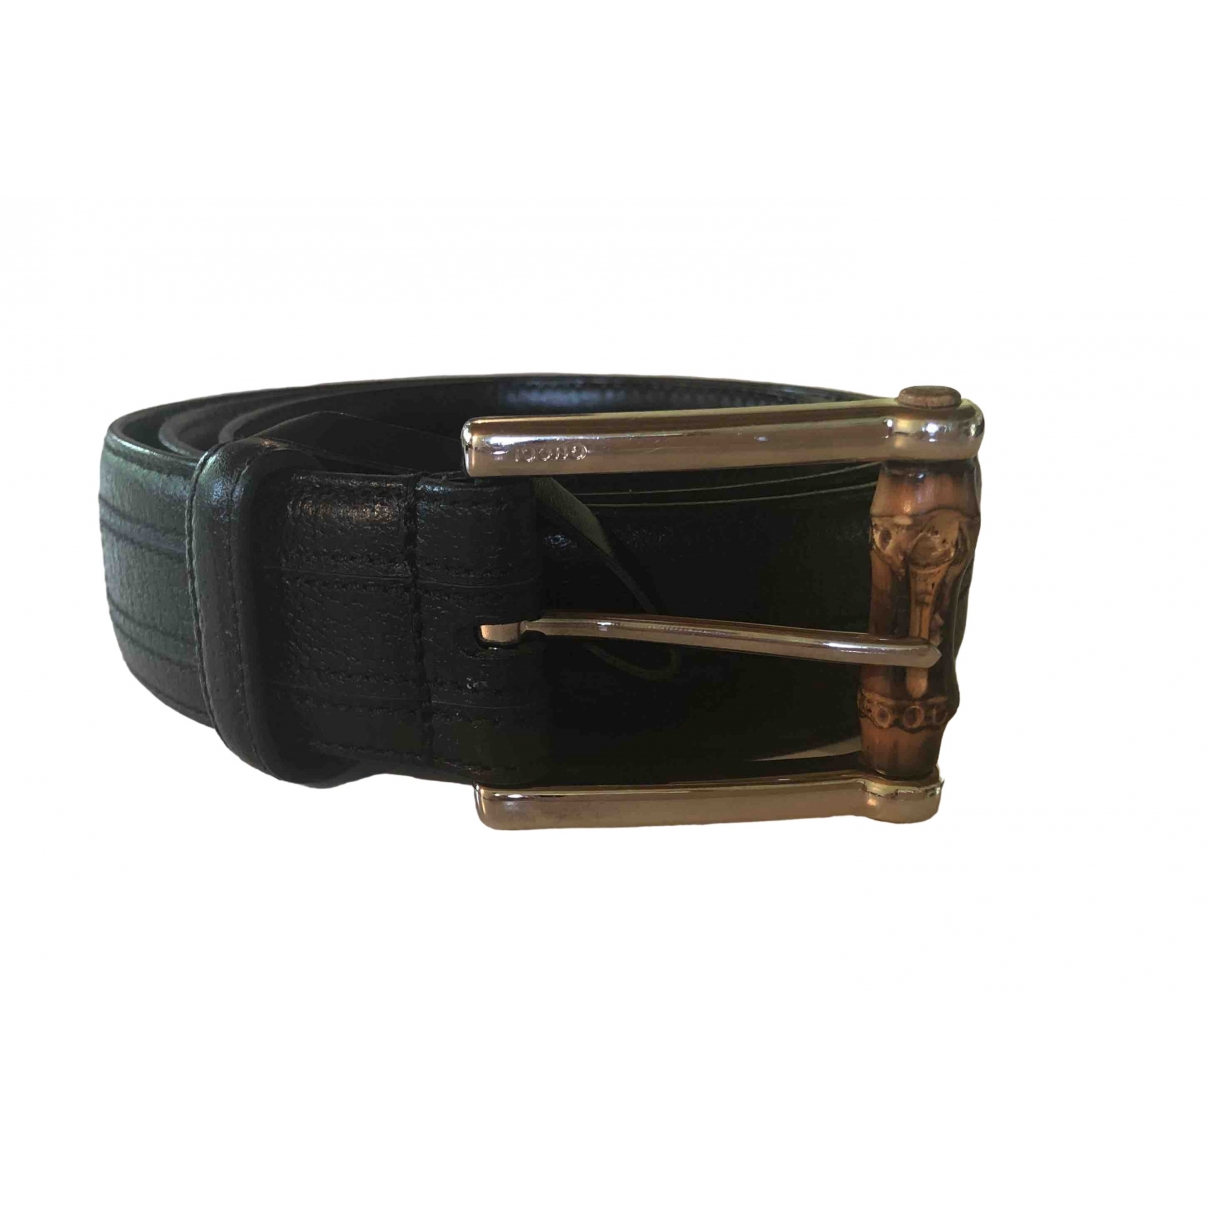 Gucci \N Black Leather belt for Women 95 cm